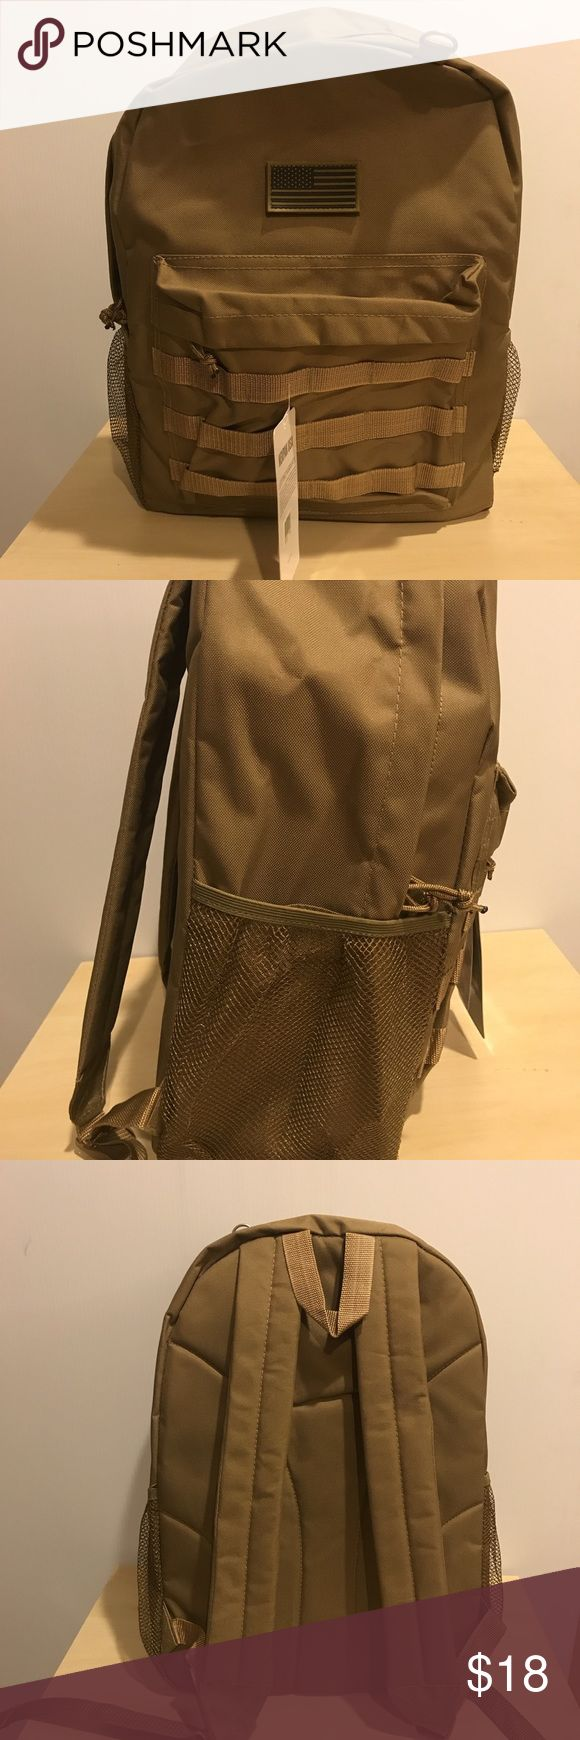 "Tan Basic Tactical Backpack Nwt size 18""x13.5x7"" Basic backpack 1 full compartment and 1 front zip pocket, 2 mesh side pockets, D-ring, and comes with small American flag Velcro patch, with Molle straps on front pocket Bags Backpacks"